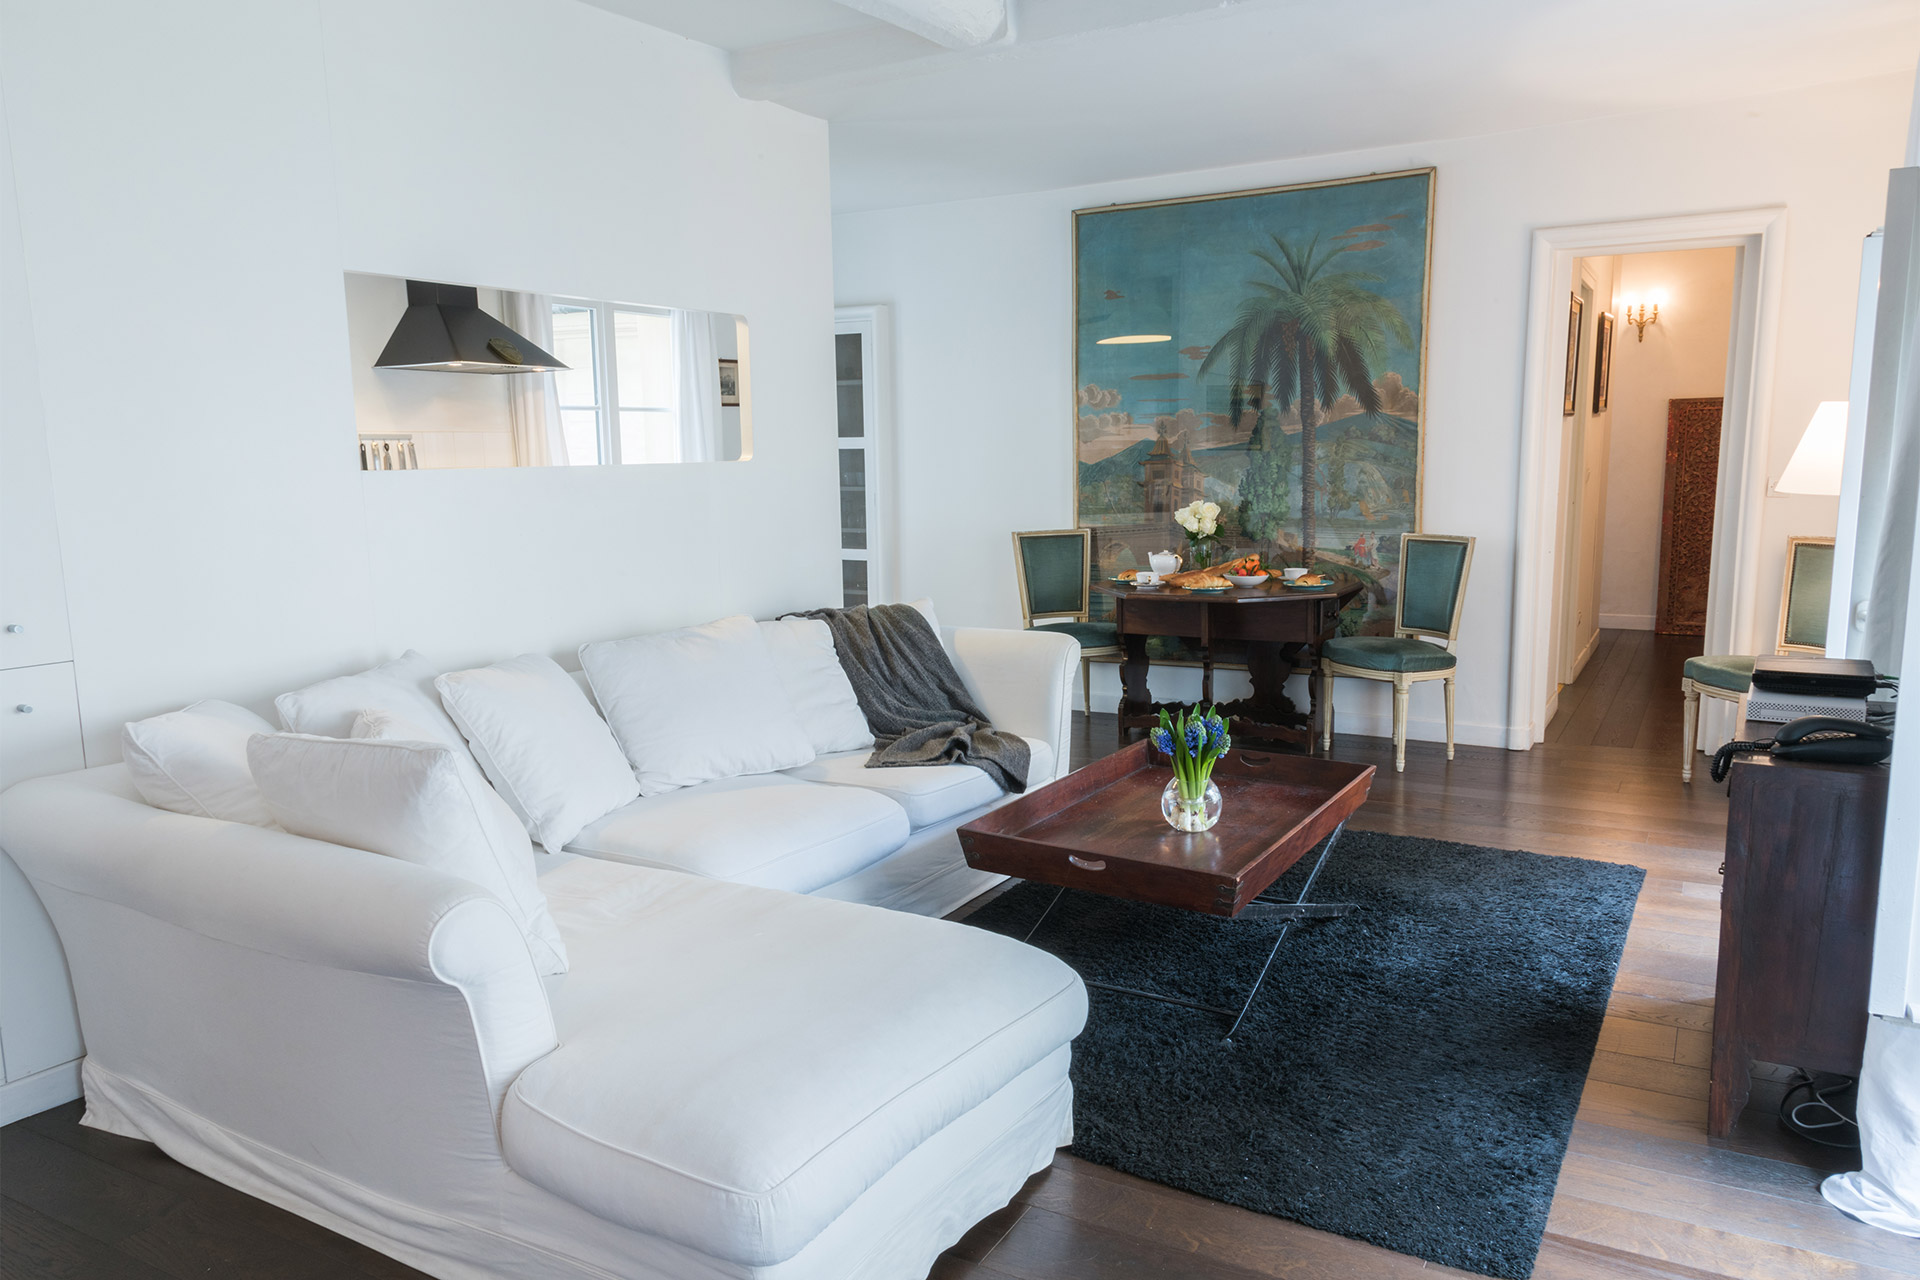 Comfortable seating area of the Jacquere vacation rental offered by Paris Perfect